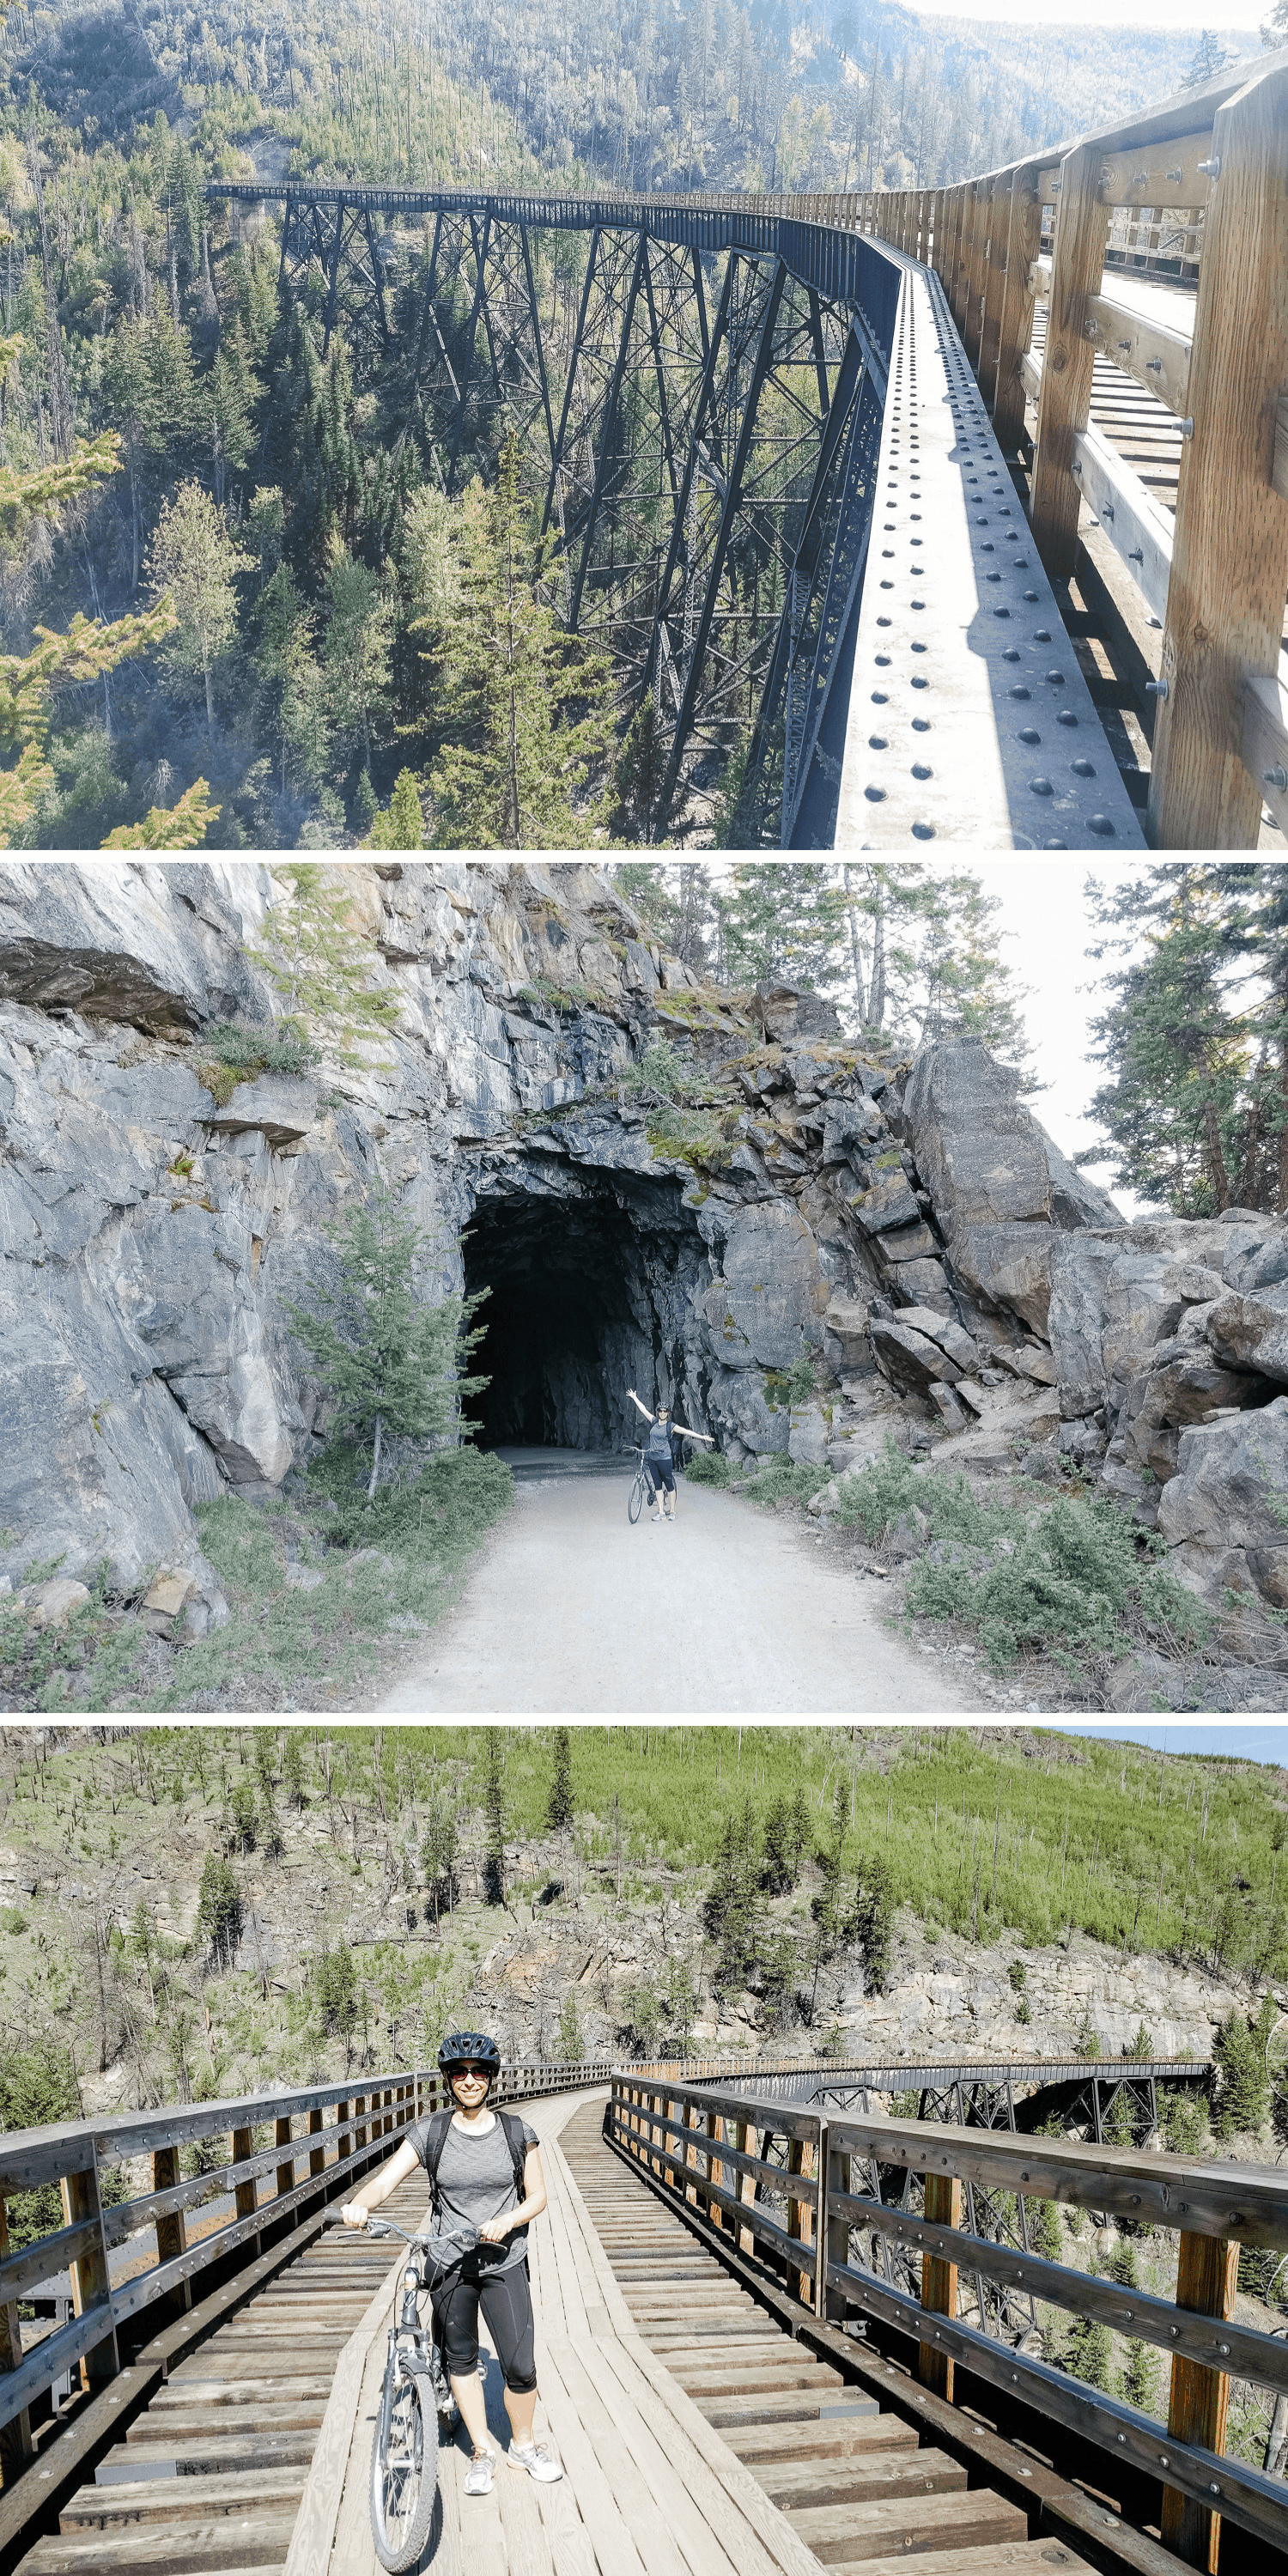 Collage of photos taken at Myra Canyon Trestles in Kelowna